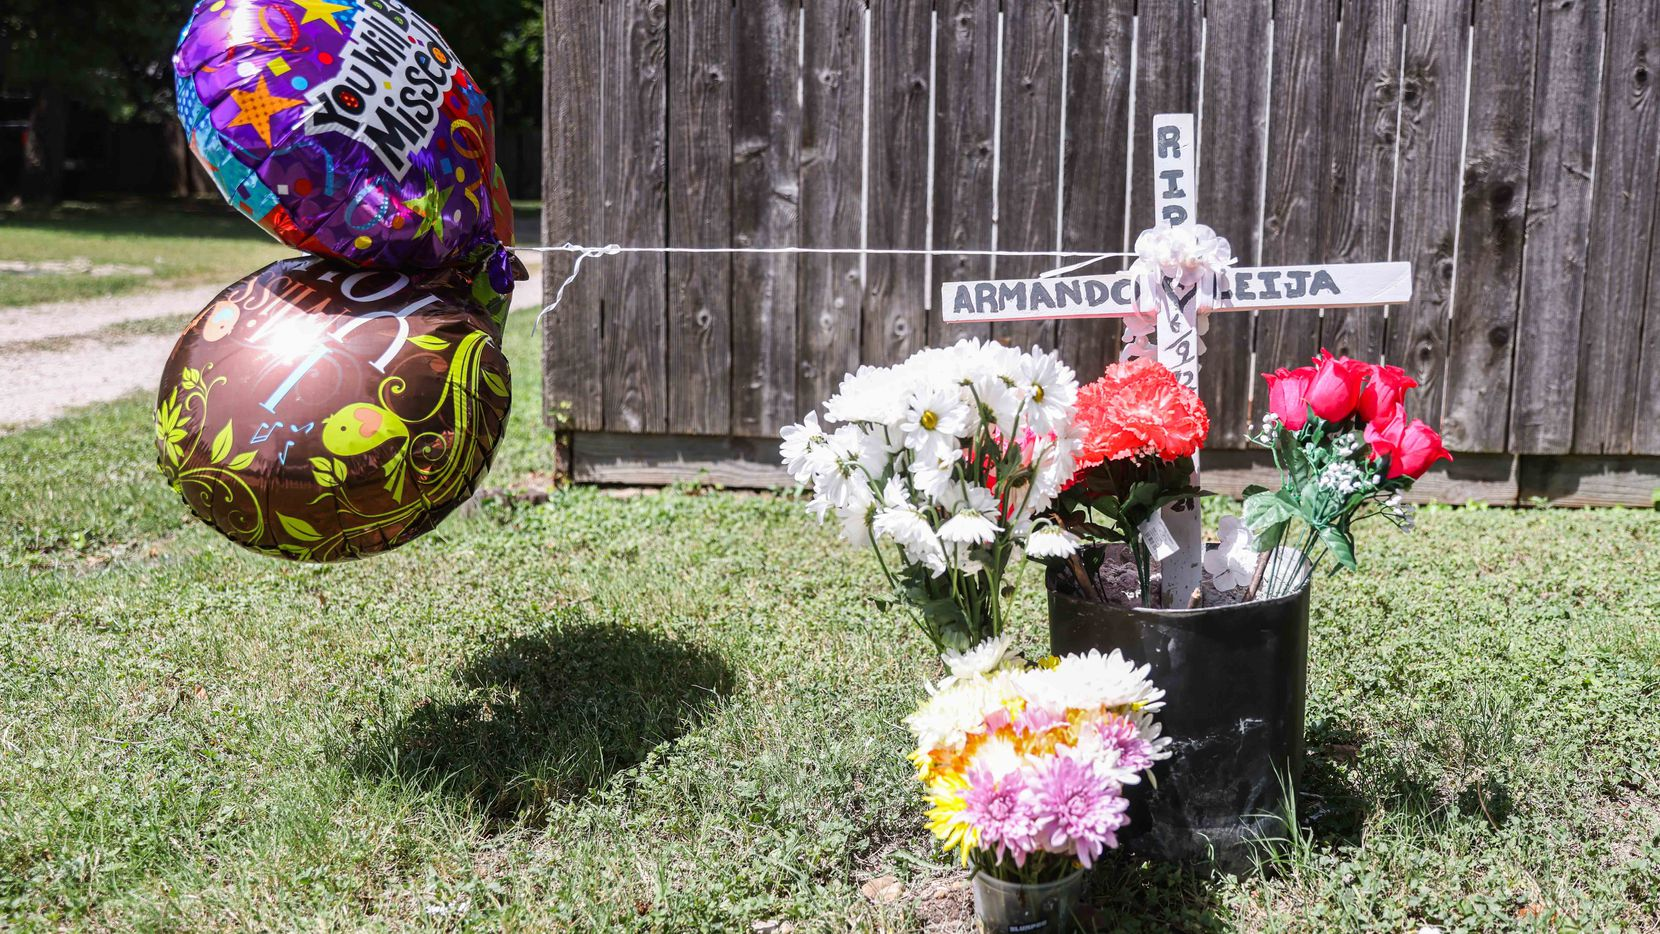 """Social media posts described Armando Leija Esparza as an amazing man who was devoted to his family and passionate about his work as """"the yard wizard"""" who took care of scores of landscaping customers. This makeshift memorial marked the site of the crash that resulted in his death July 19."""